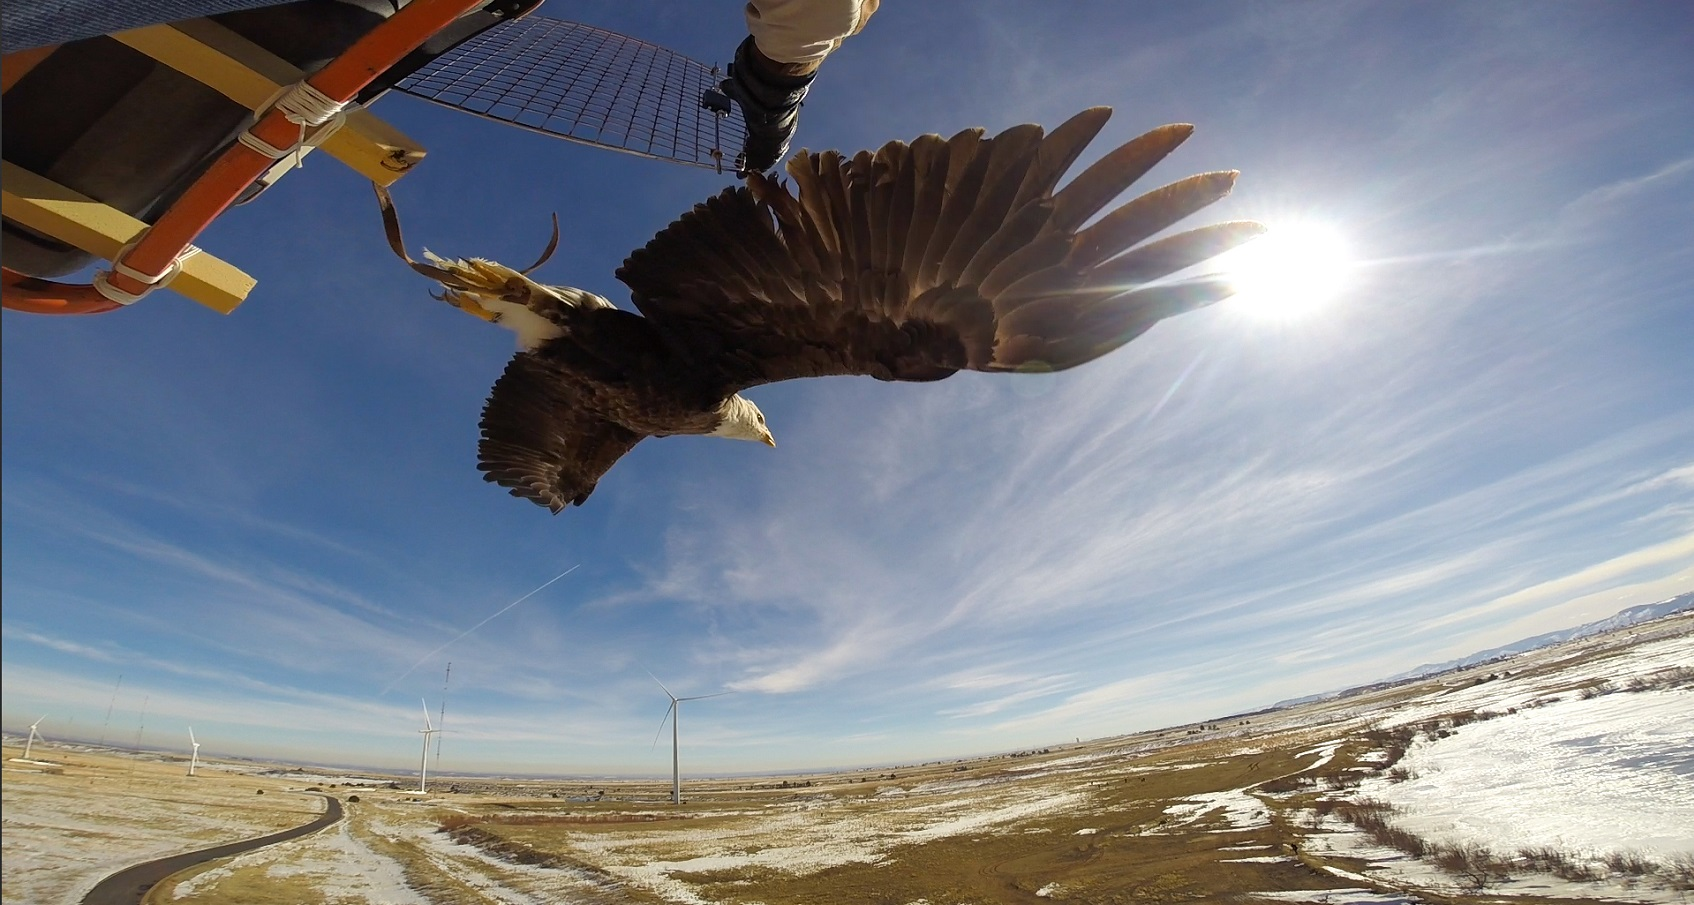 A photo of an eagle flying after being released from a kennel.